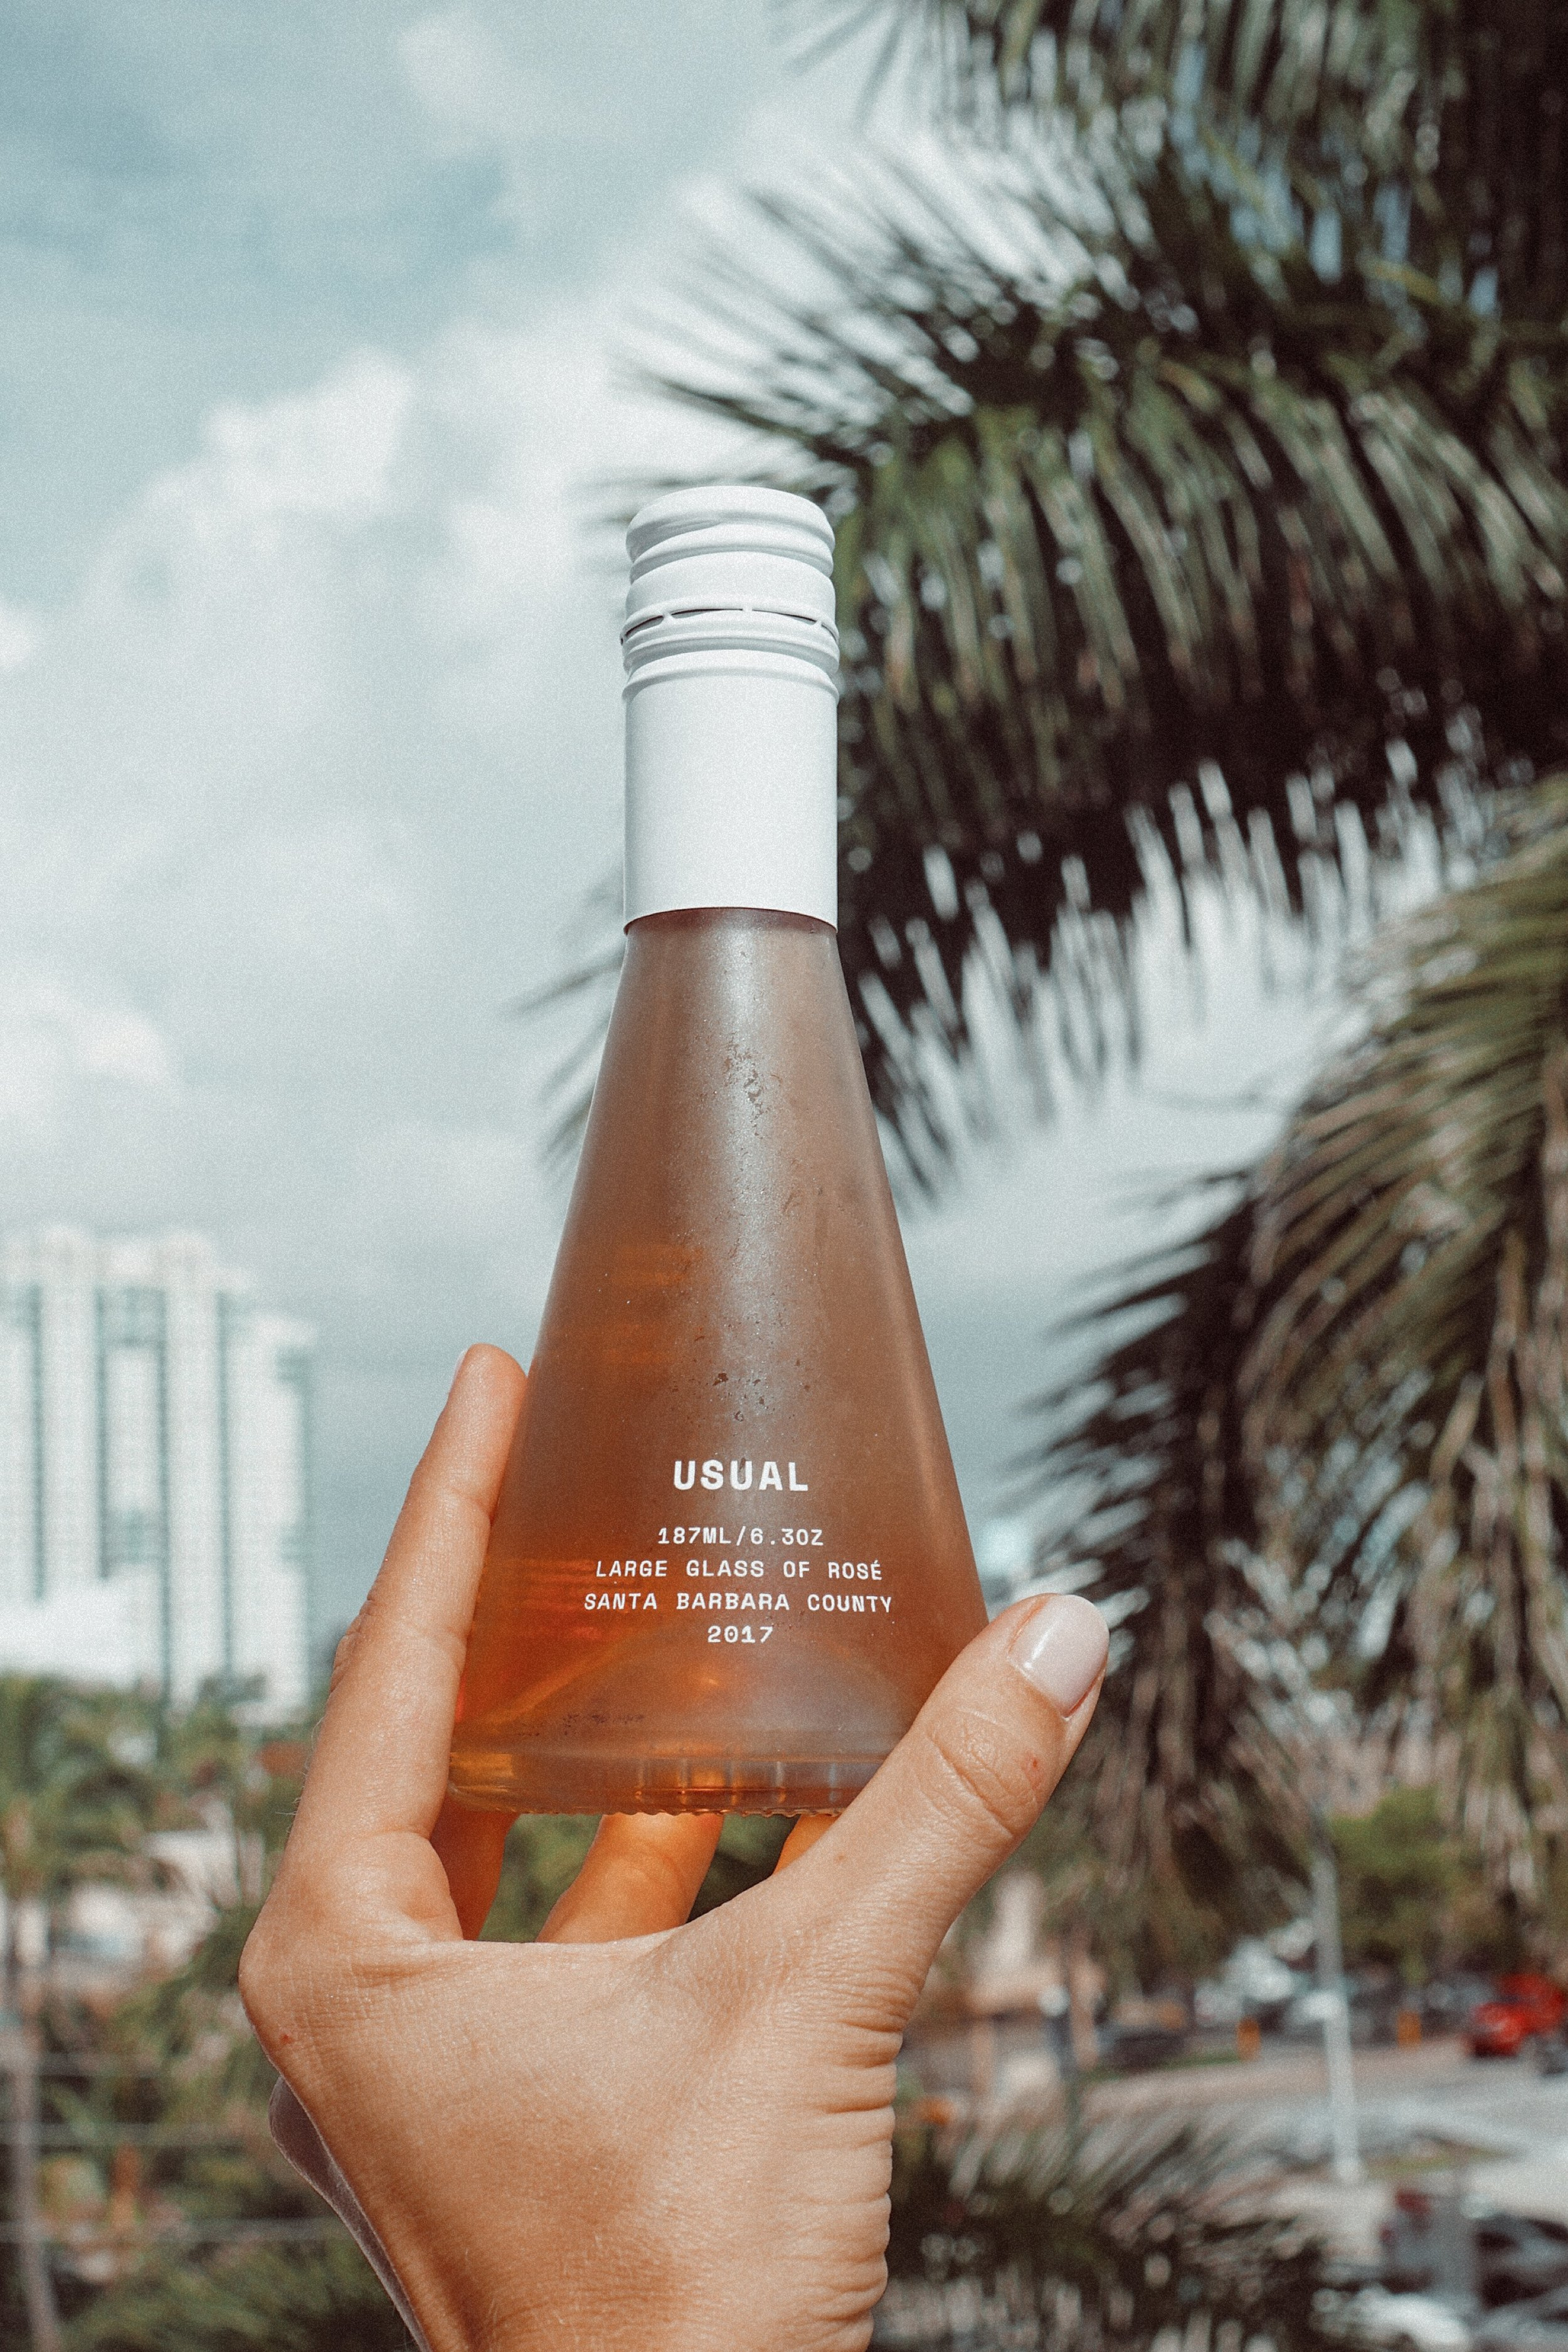 Miami Beach vibes with Usual Wines. Bottle shape and twist-off cap make it super easy and accessible. So cute!